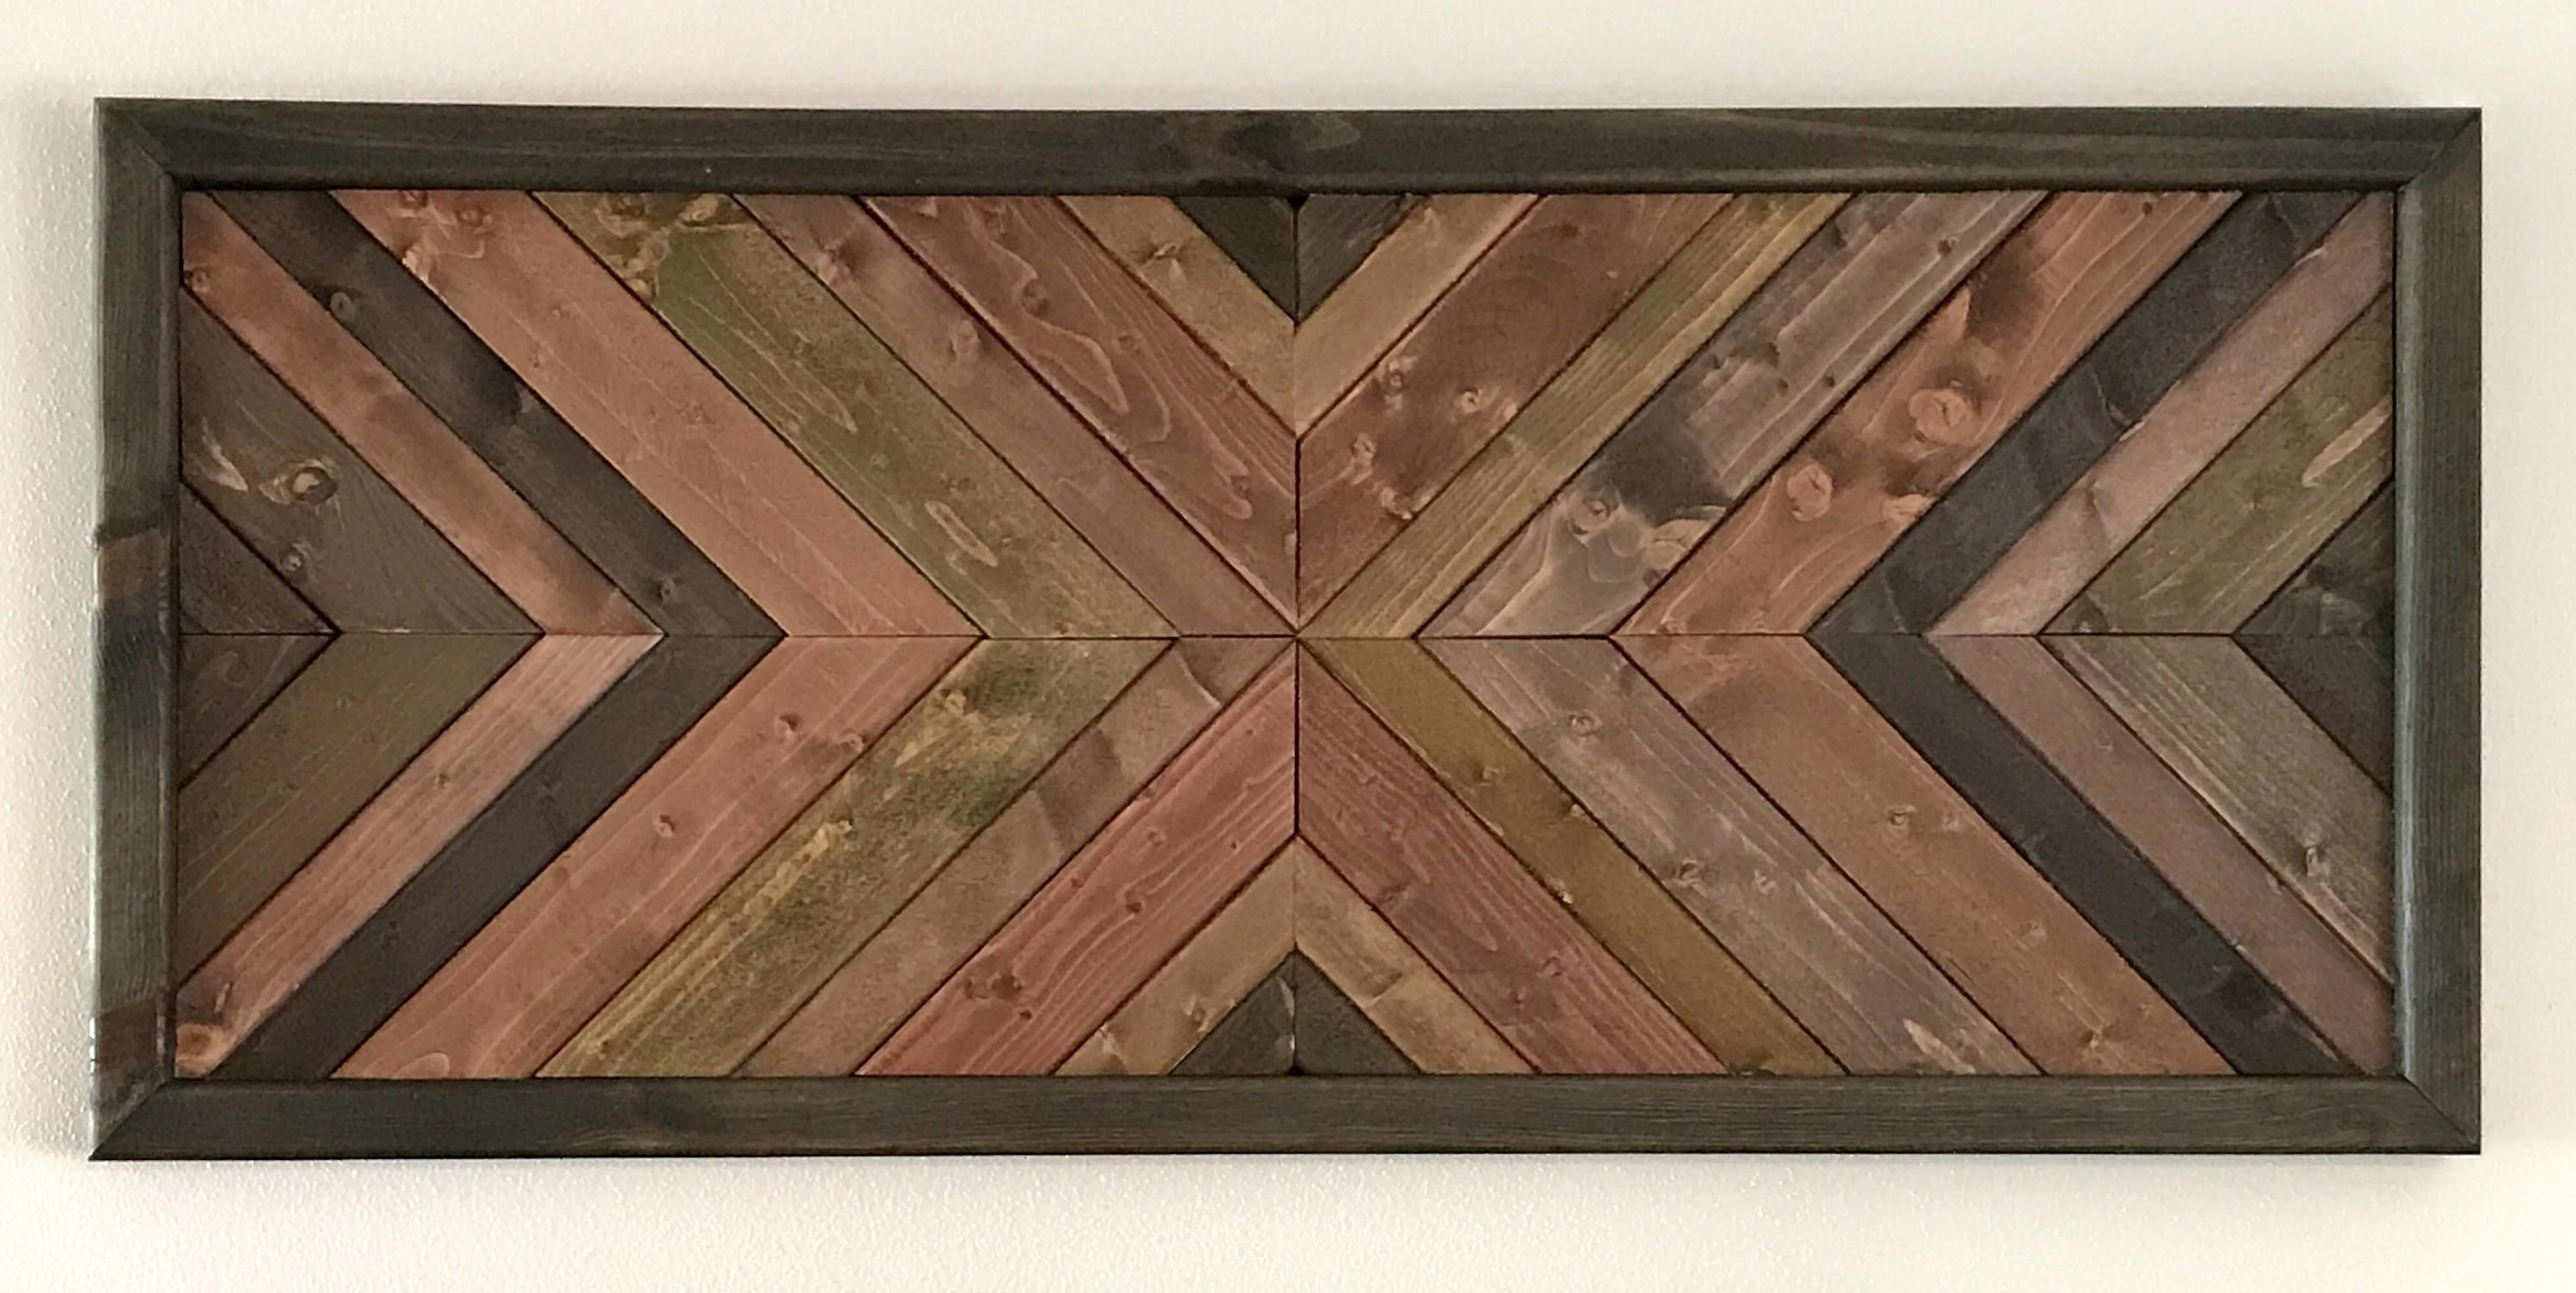 Large Wooden Geometric Quilted Rustic Wall Art